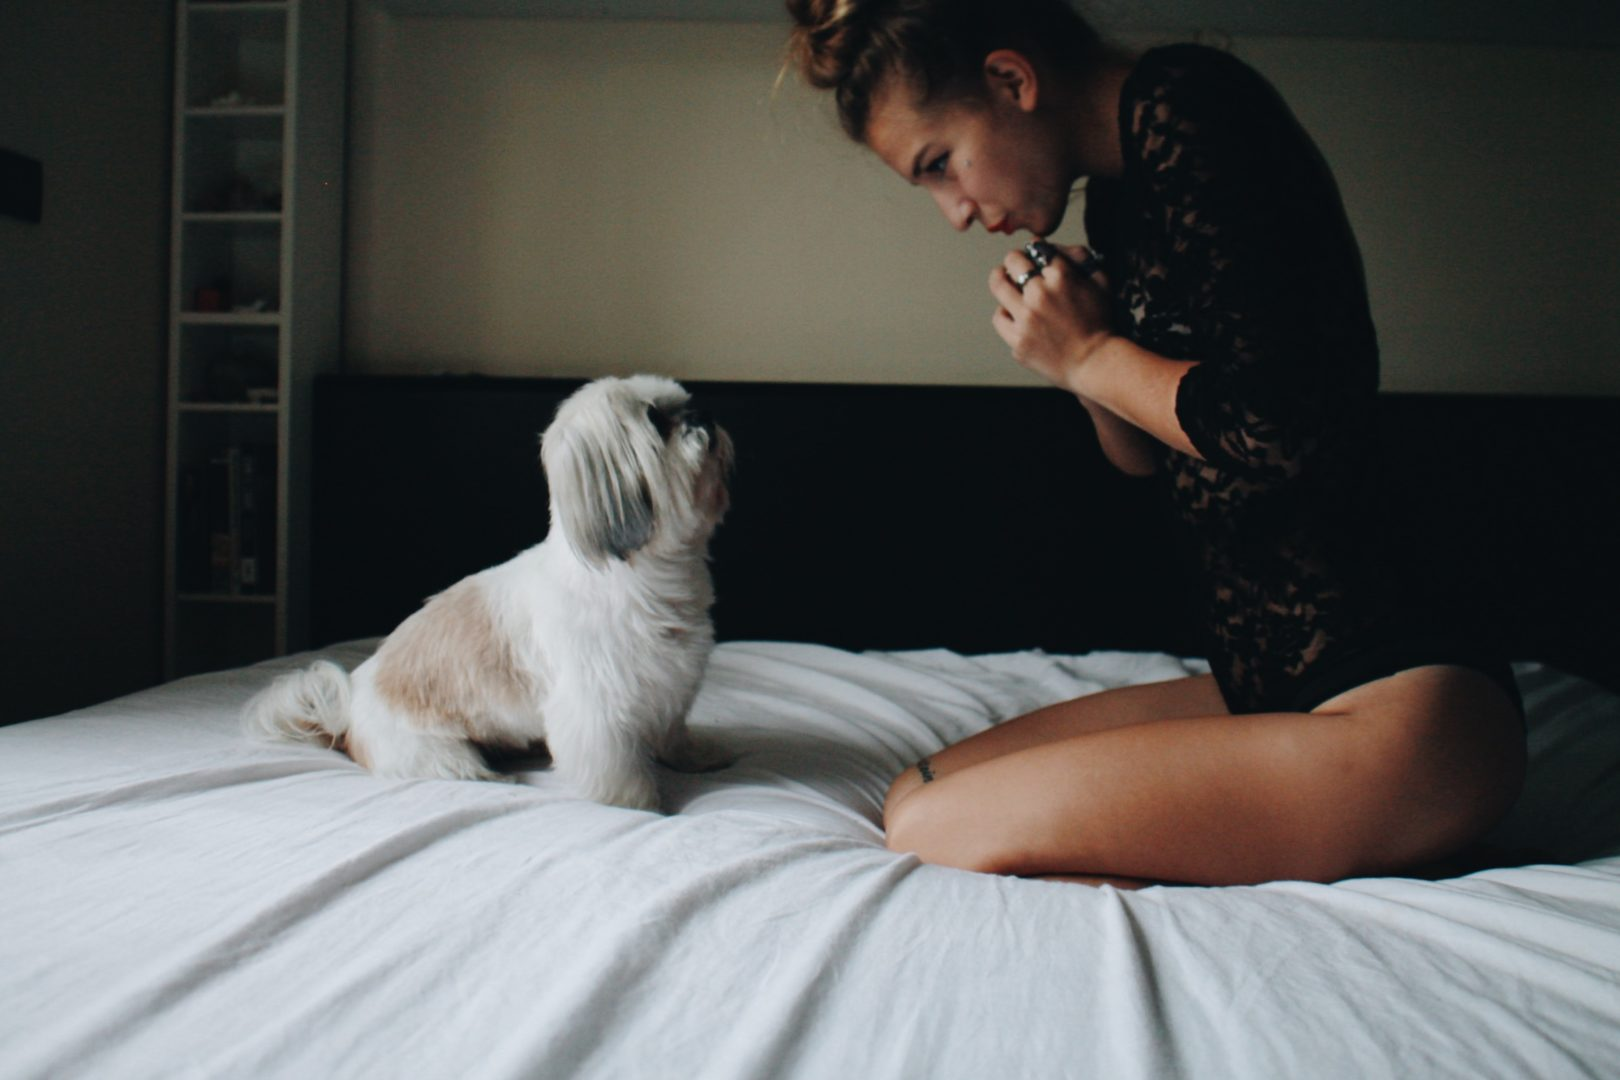 Processed wiPERSONAL STYLE AND SOME PUPPY SHOTSth VSCO with a6 preset